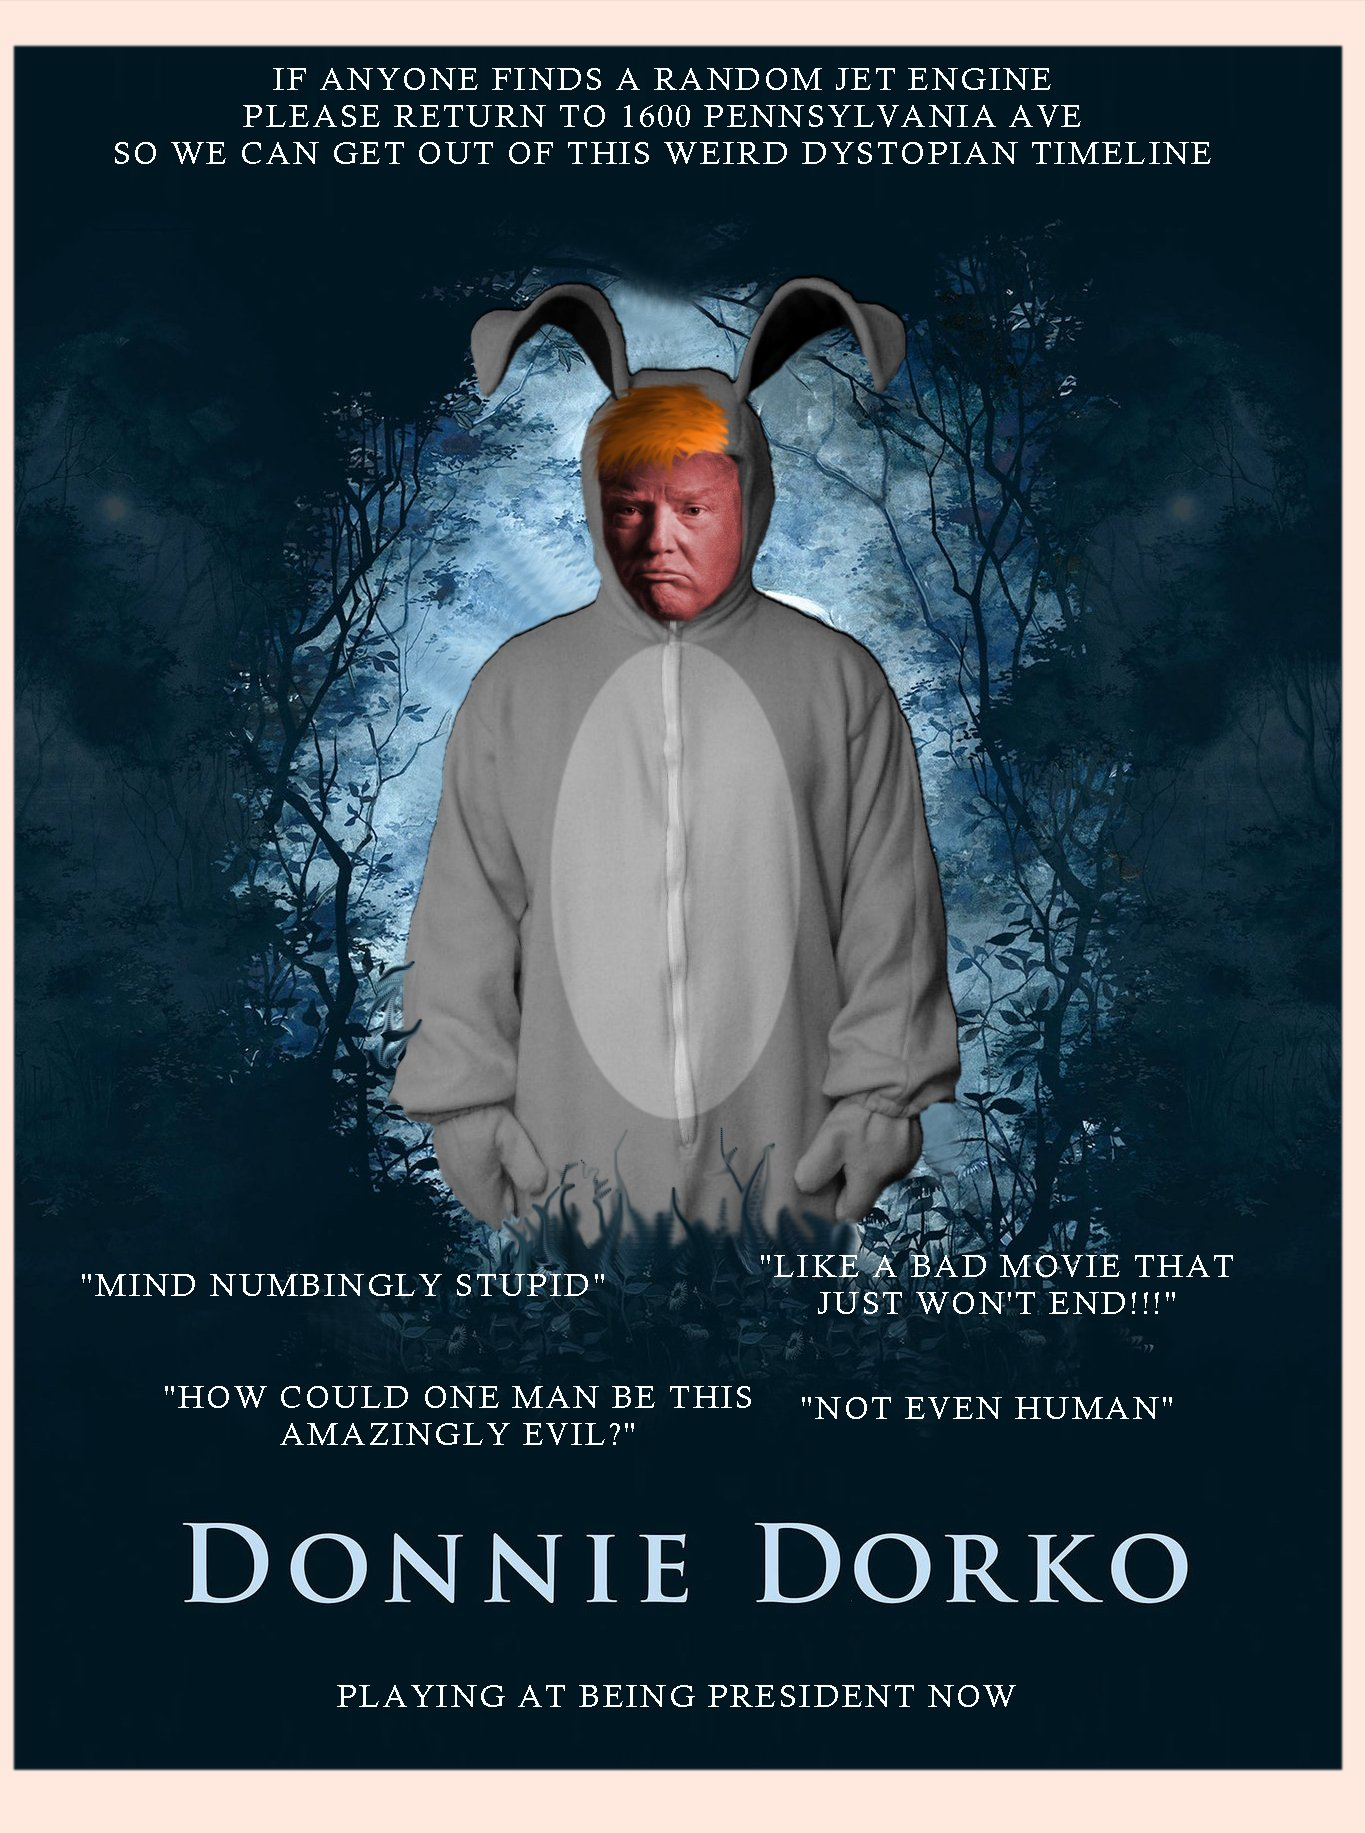 Donnie Dorko